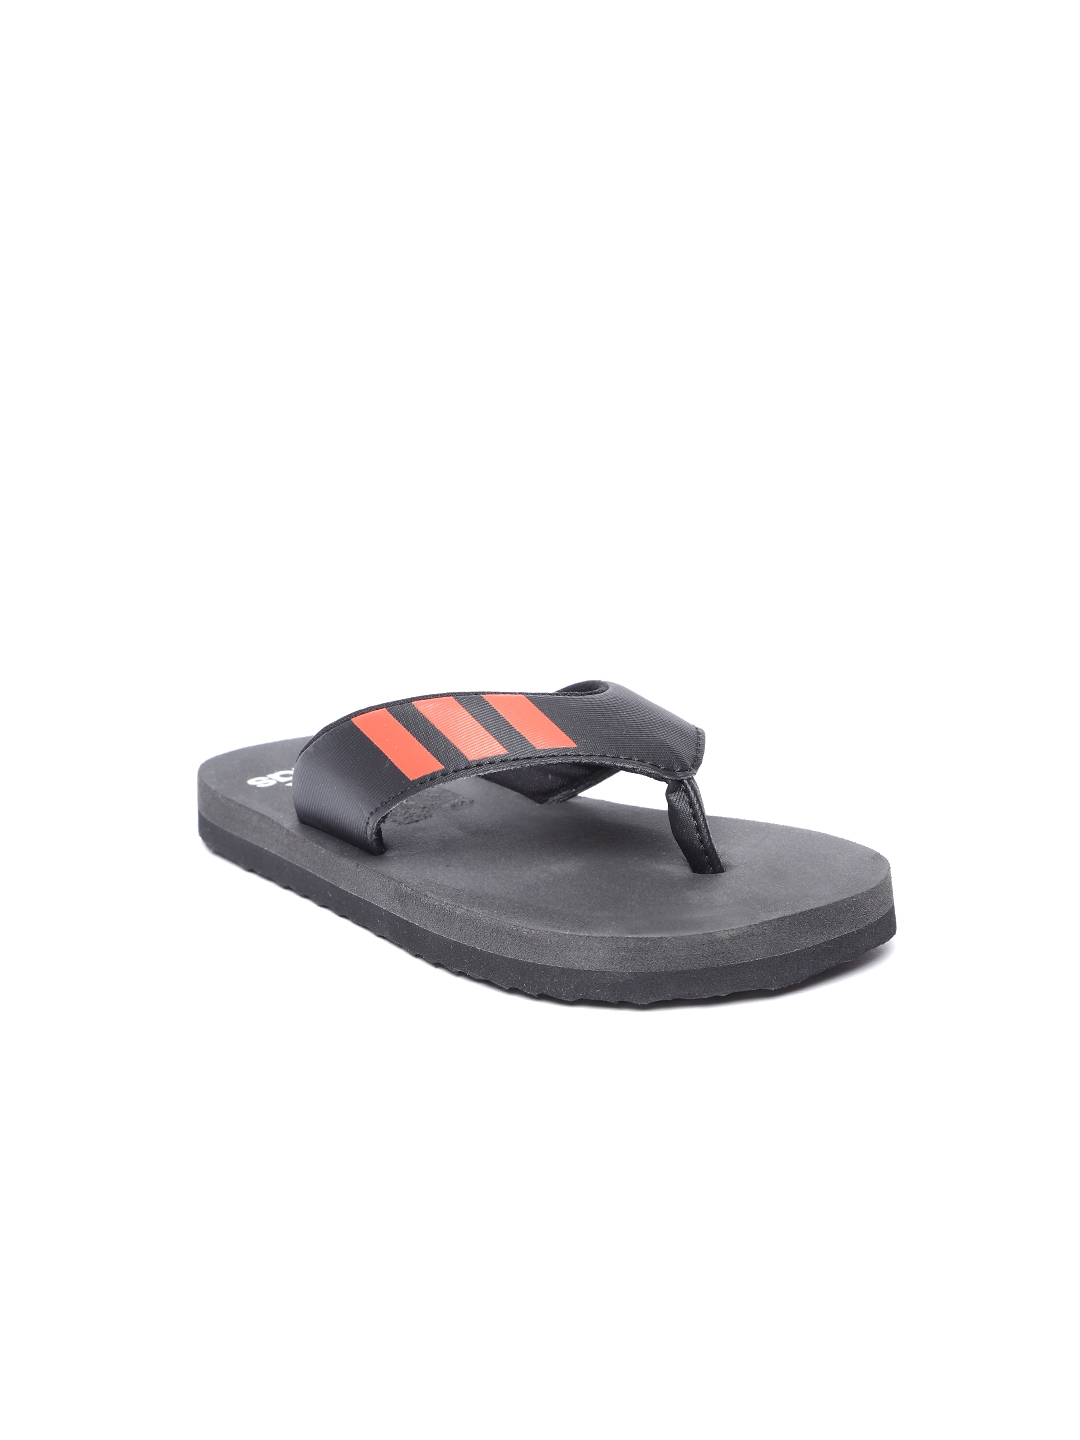 26652de3bf49 Buy ADIDAS Boys Black   Charcoal Grey COSET Thong Flip Flops - Flip ...